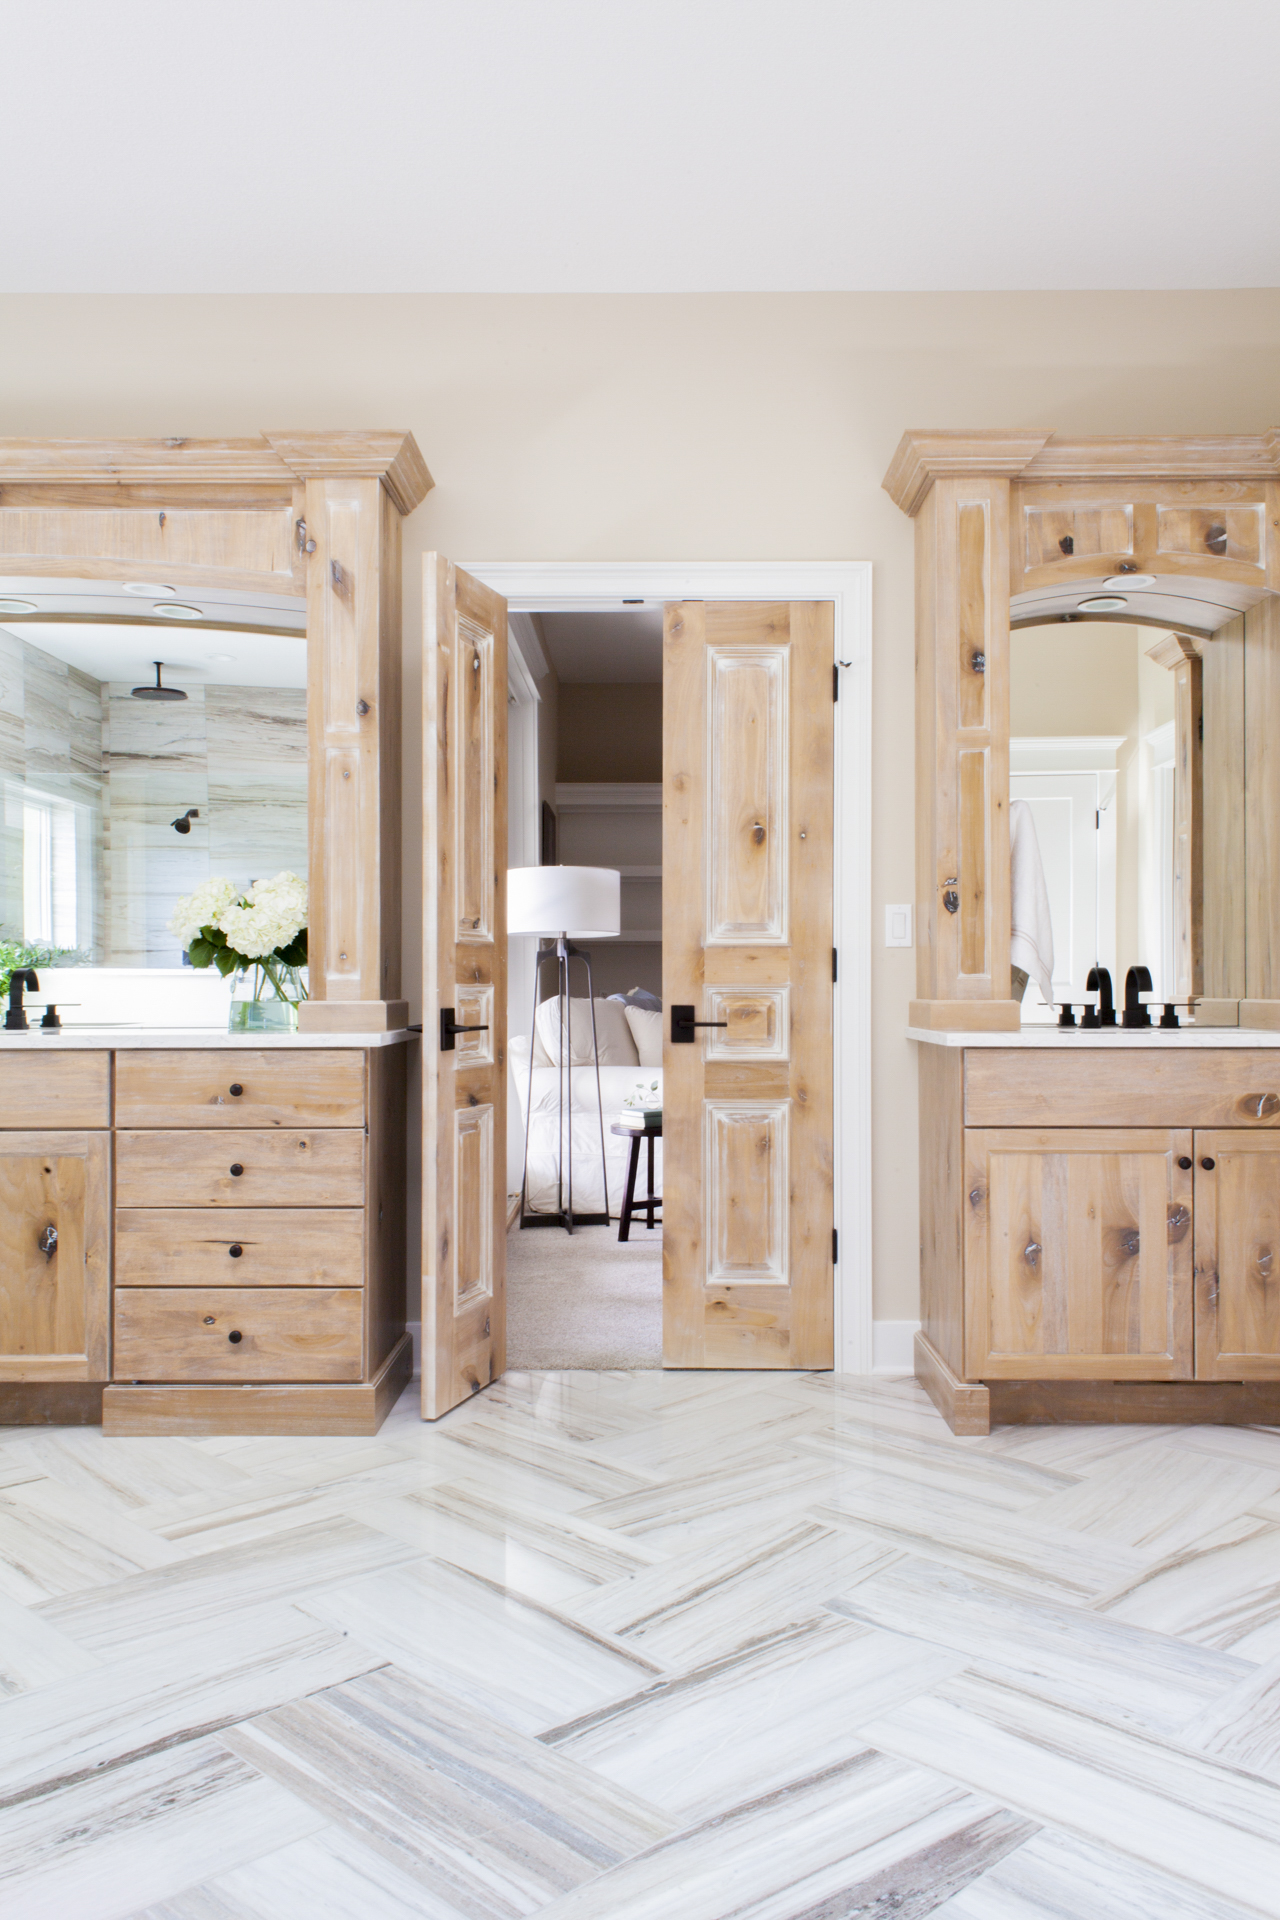 before-and-after-home-reveal-scout-and-nimble-lake-view-luxe-country-interior-design-luxury-bathroom-poplar-wood-doors-palo-sandro-marble-floor-herringbone-zero-entry-shower-basketweave-tile-18.jpg